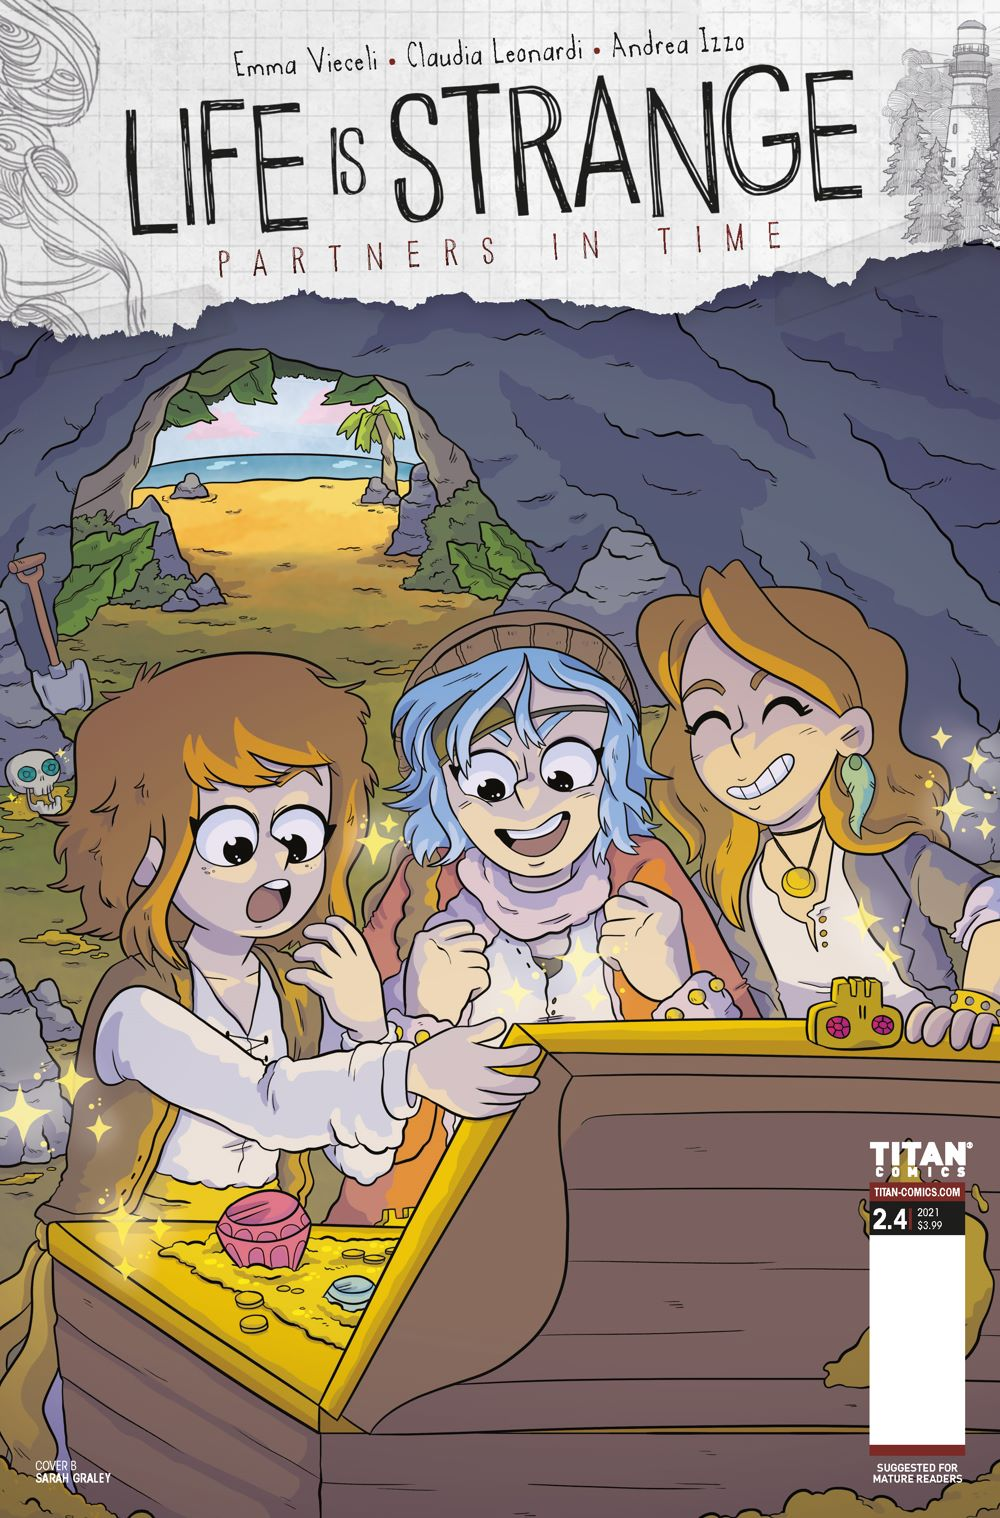 LIS_21_000__B ComicList Previews: LIFE IS STRANGE PARTNERS IN TIME #4